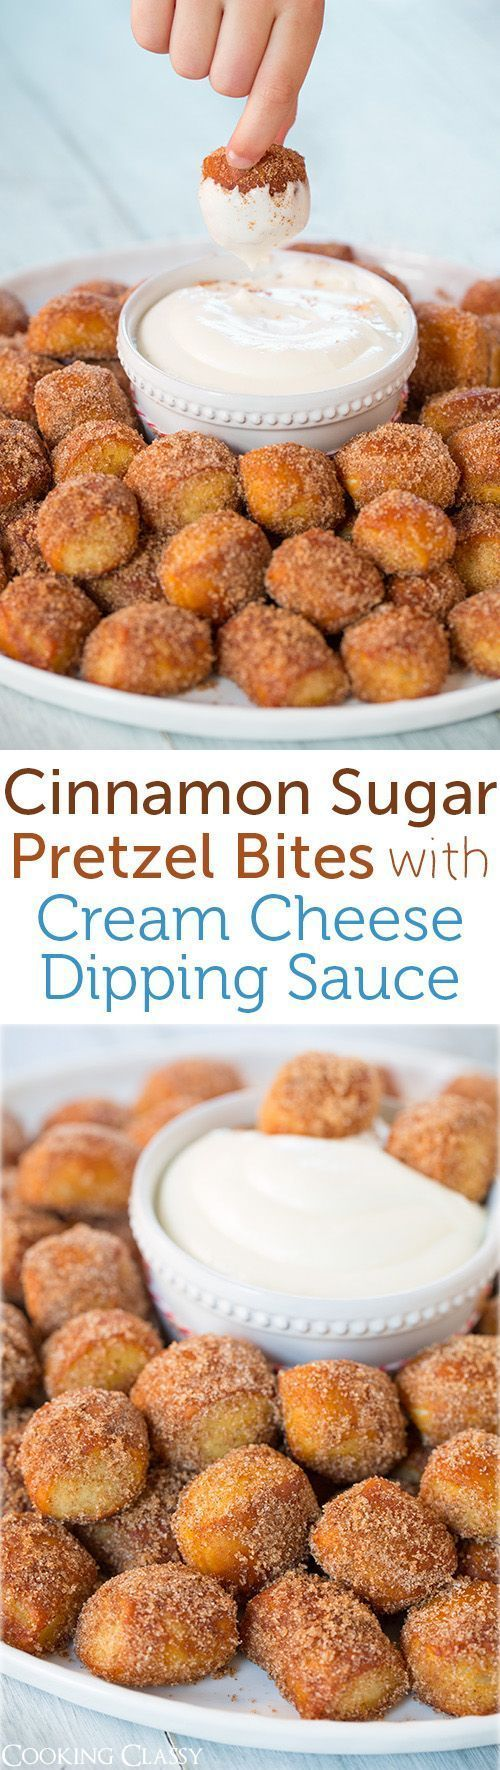 Sweet Treats, Desserts, Fall, Recipes, Copycat, Auntie Anne's, Cinnamon Sugar Pretzel Bites,  Cream Cheese Dipping sauce